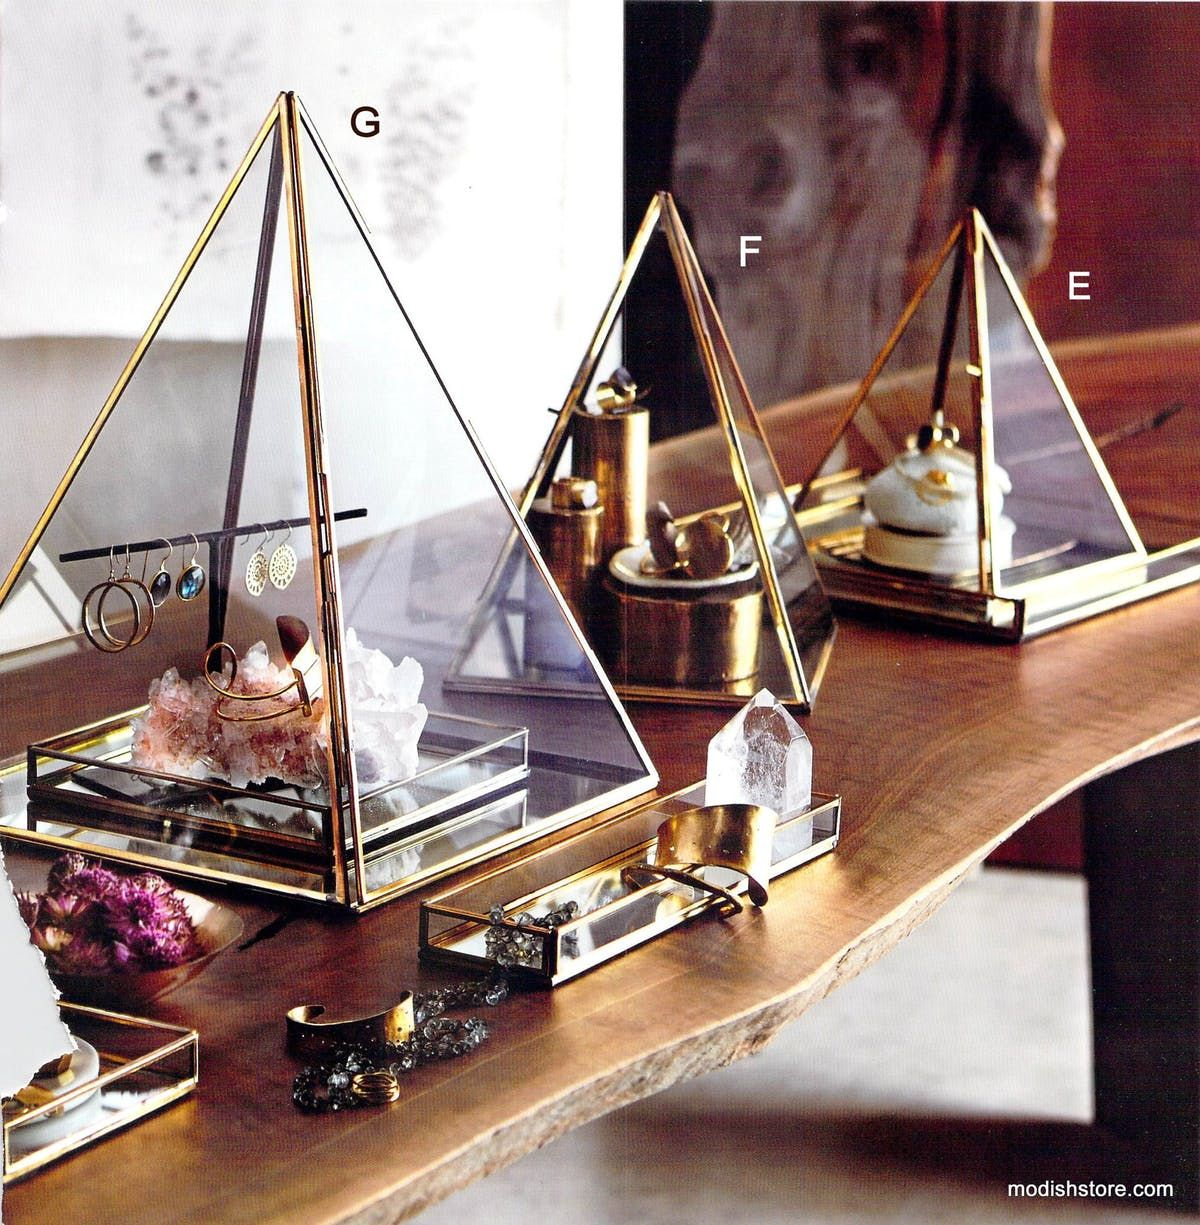 Roost Brass Pyramid Display Boxes Modish Store Display